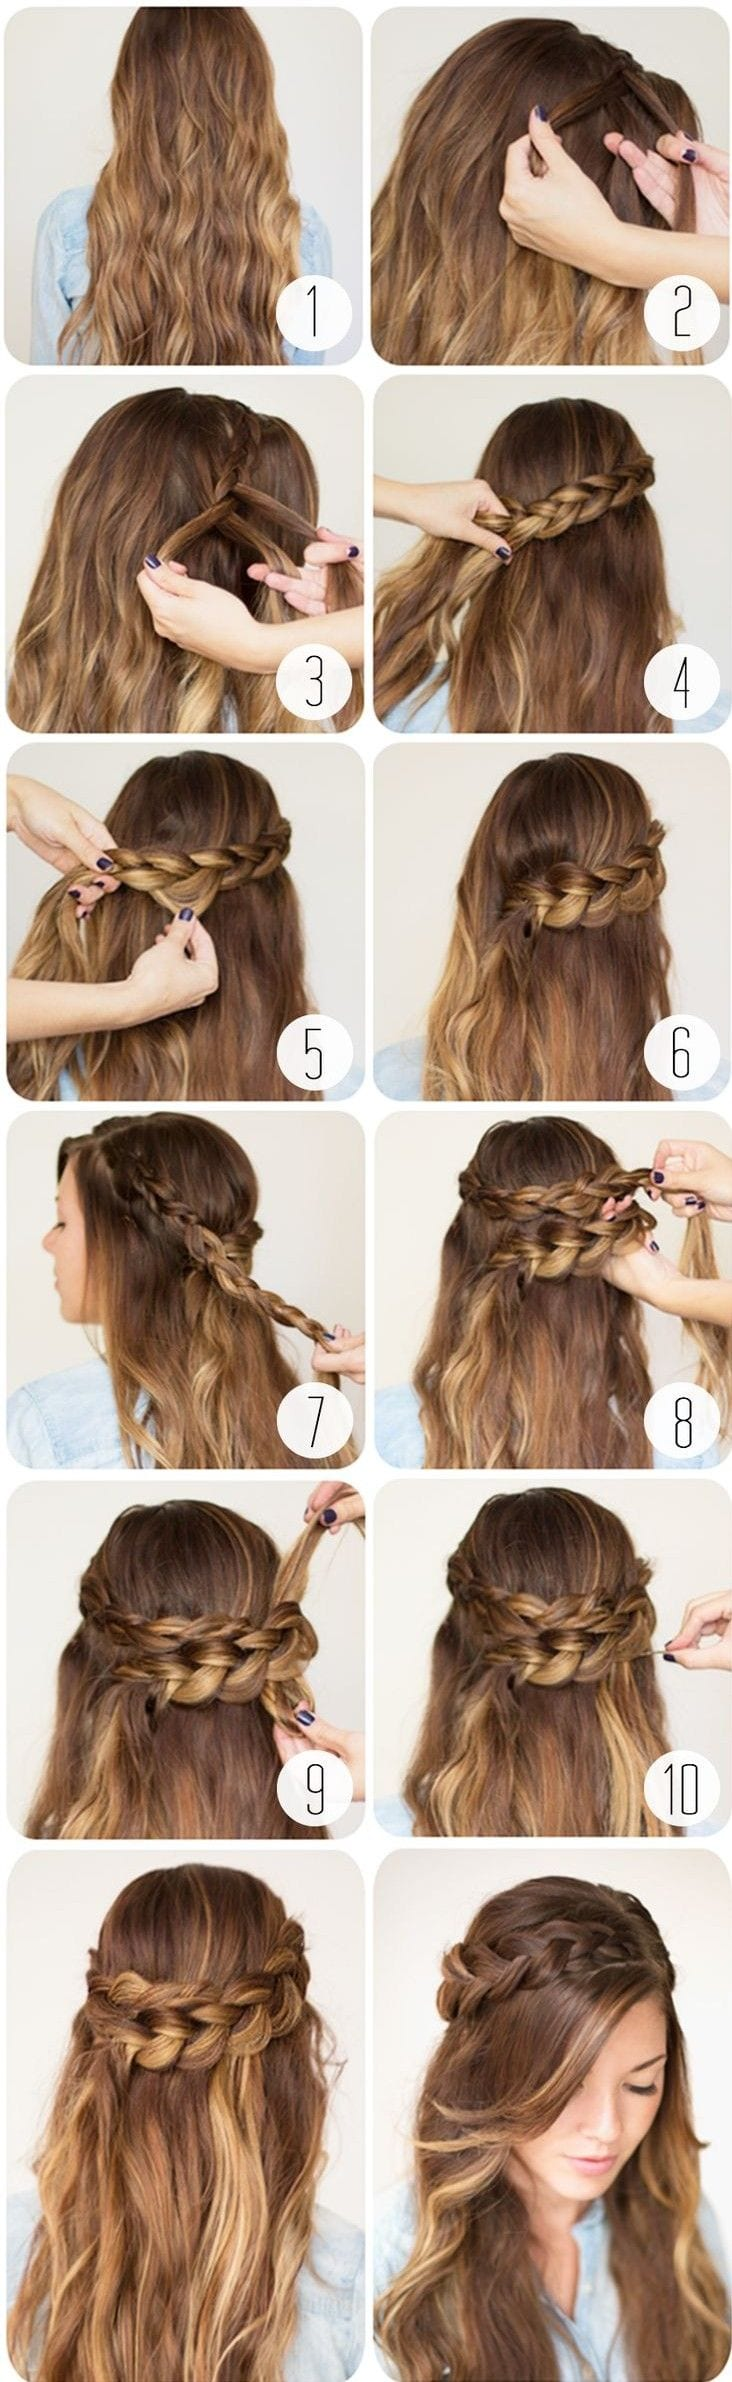 Astounding Cute Easy Messy Buns Long Hair Casual Easy Updos For Long Hair Short Hairstyles Gunalazisus